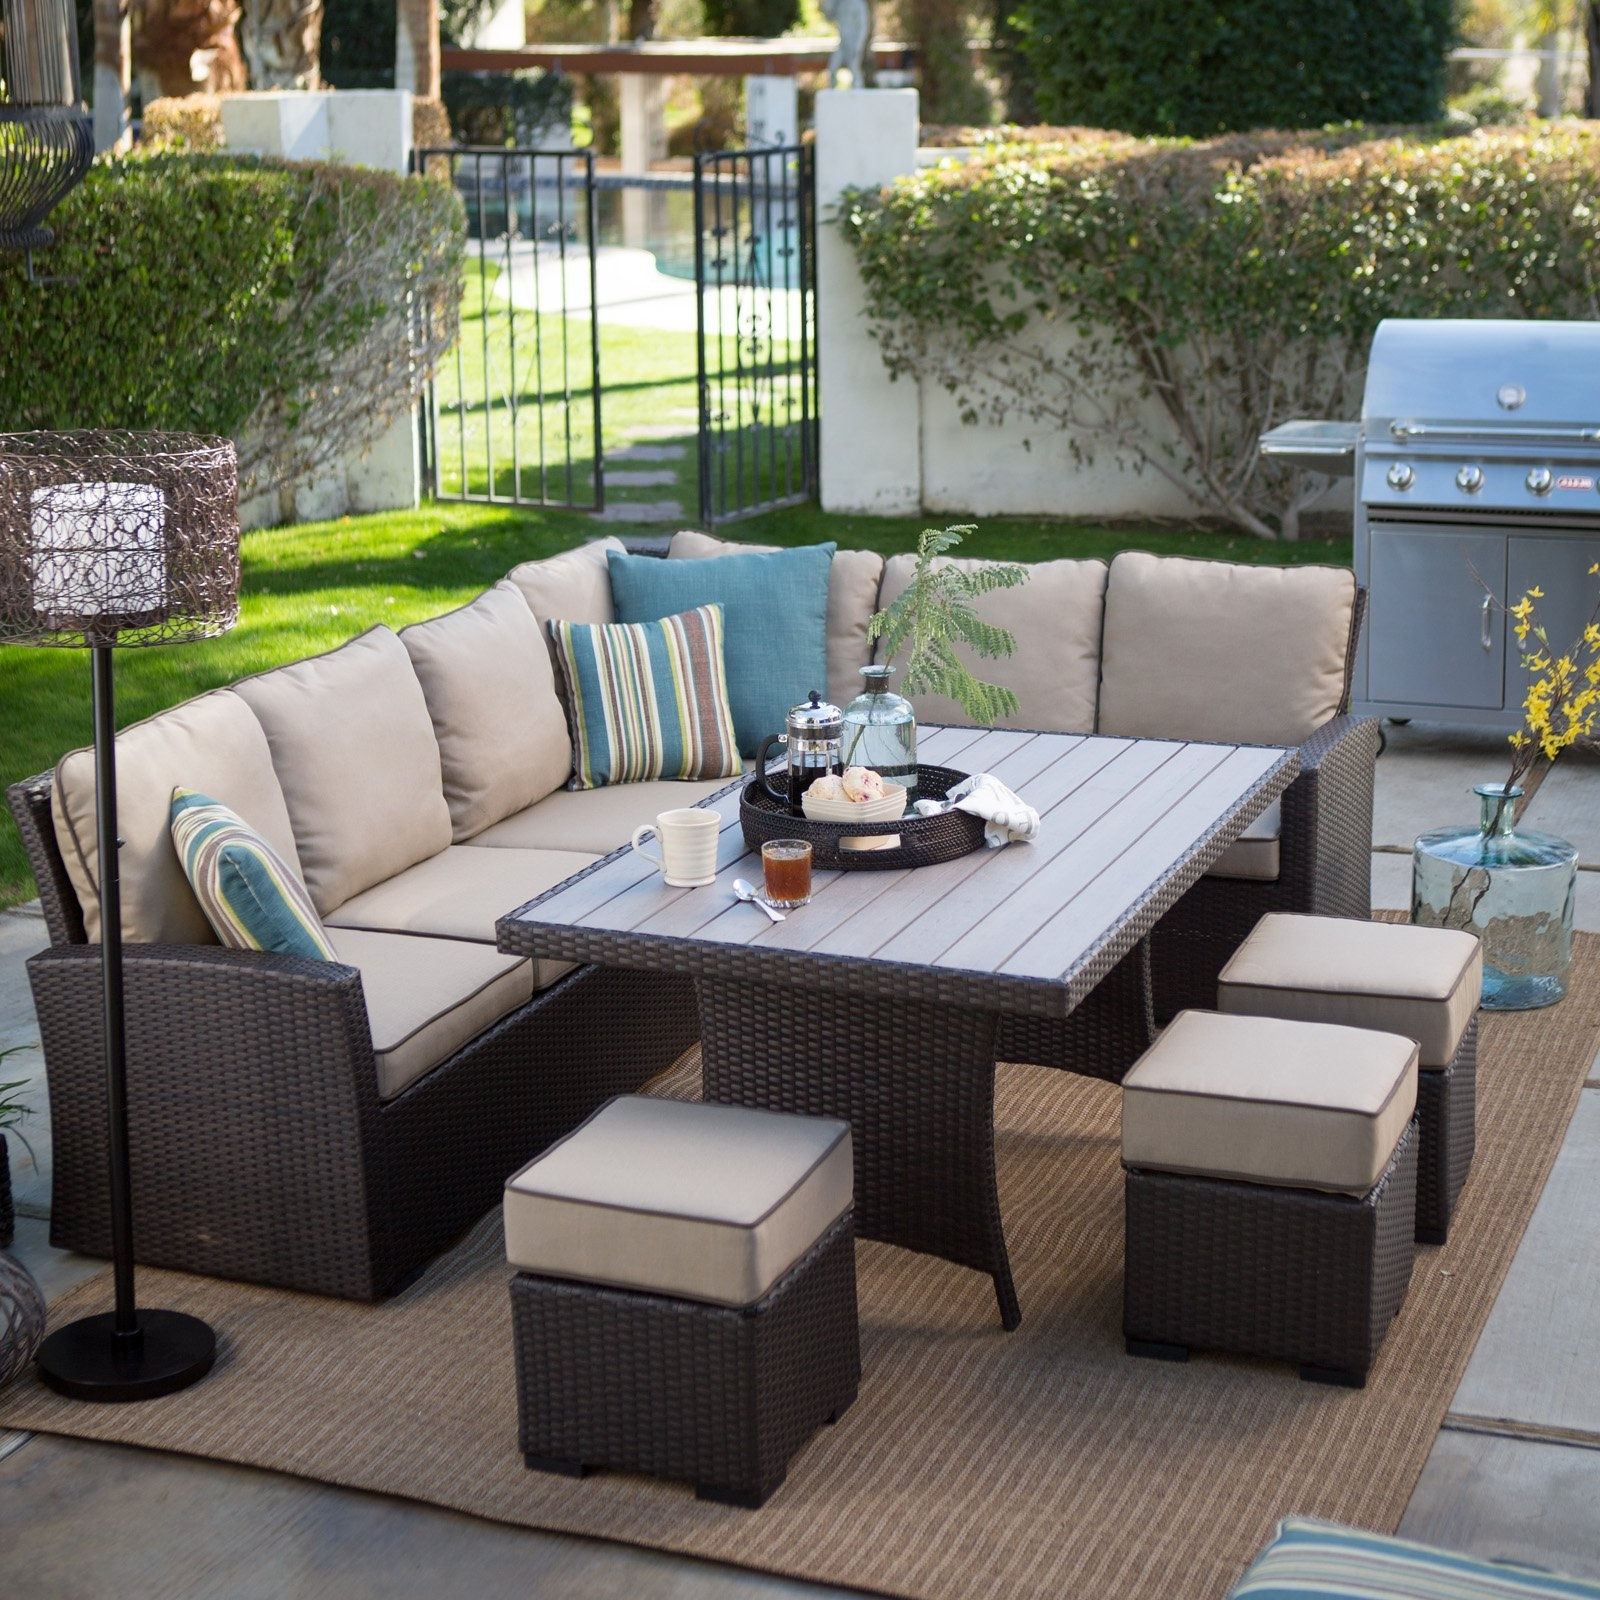 Patio Sectional Conversation Sets With Regard To Famous Belham Living Monticello All Weather Wicker Sofa Sectional Patio (View 14 of 20)